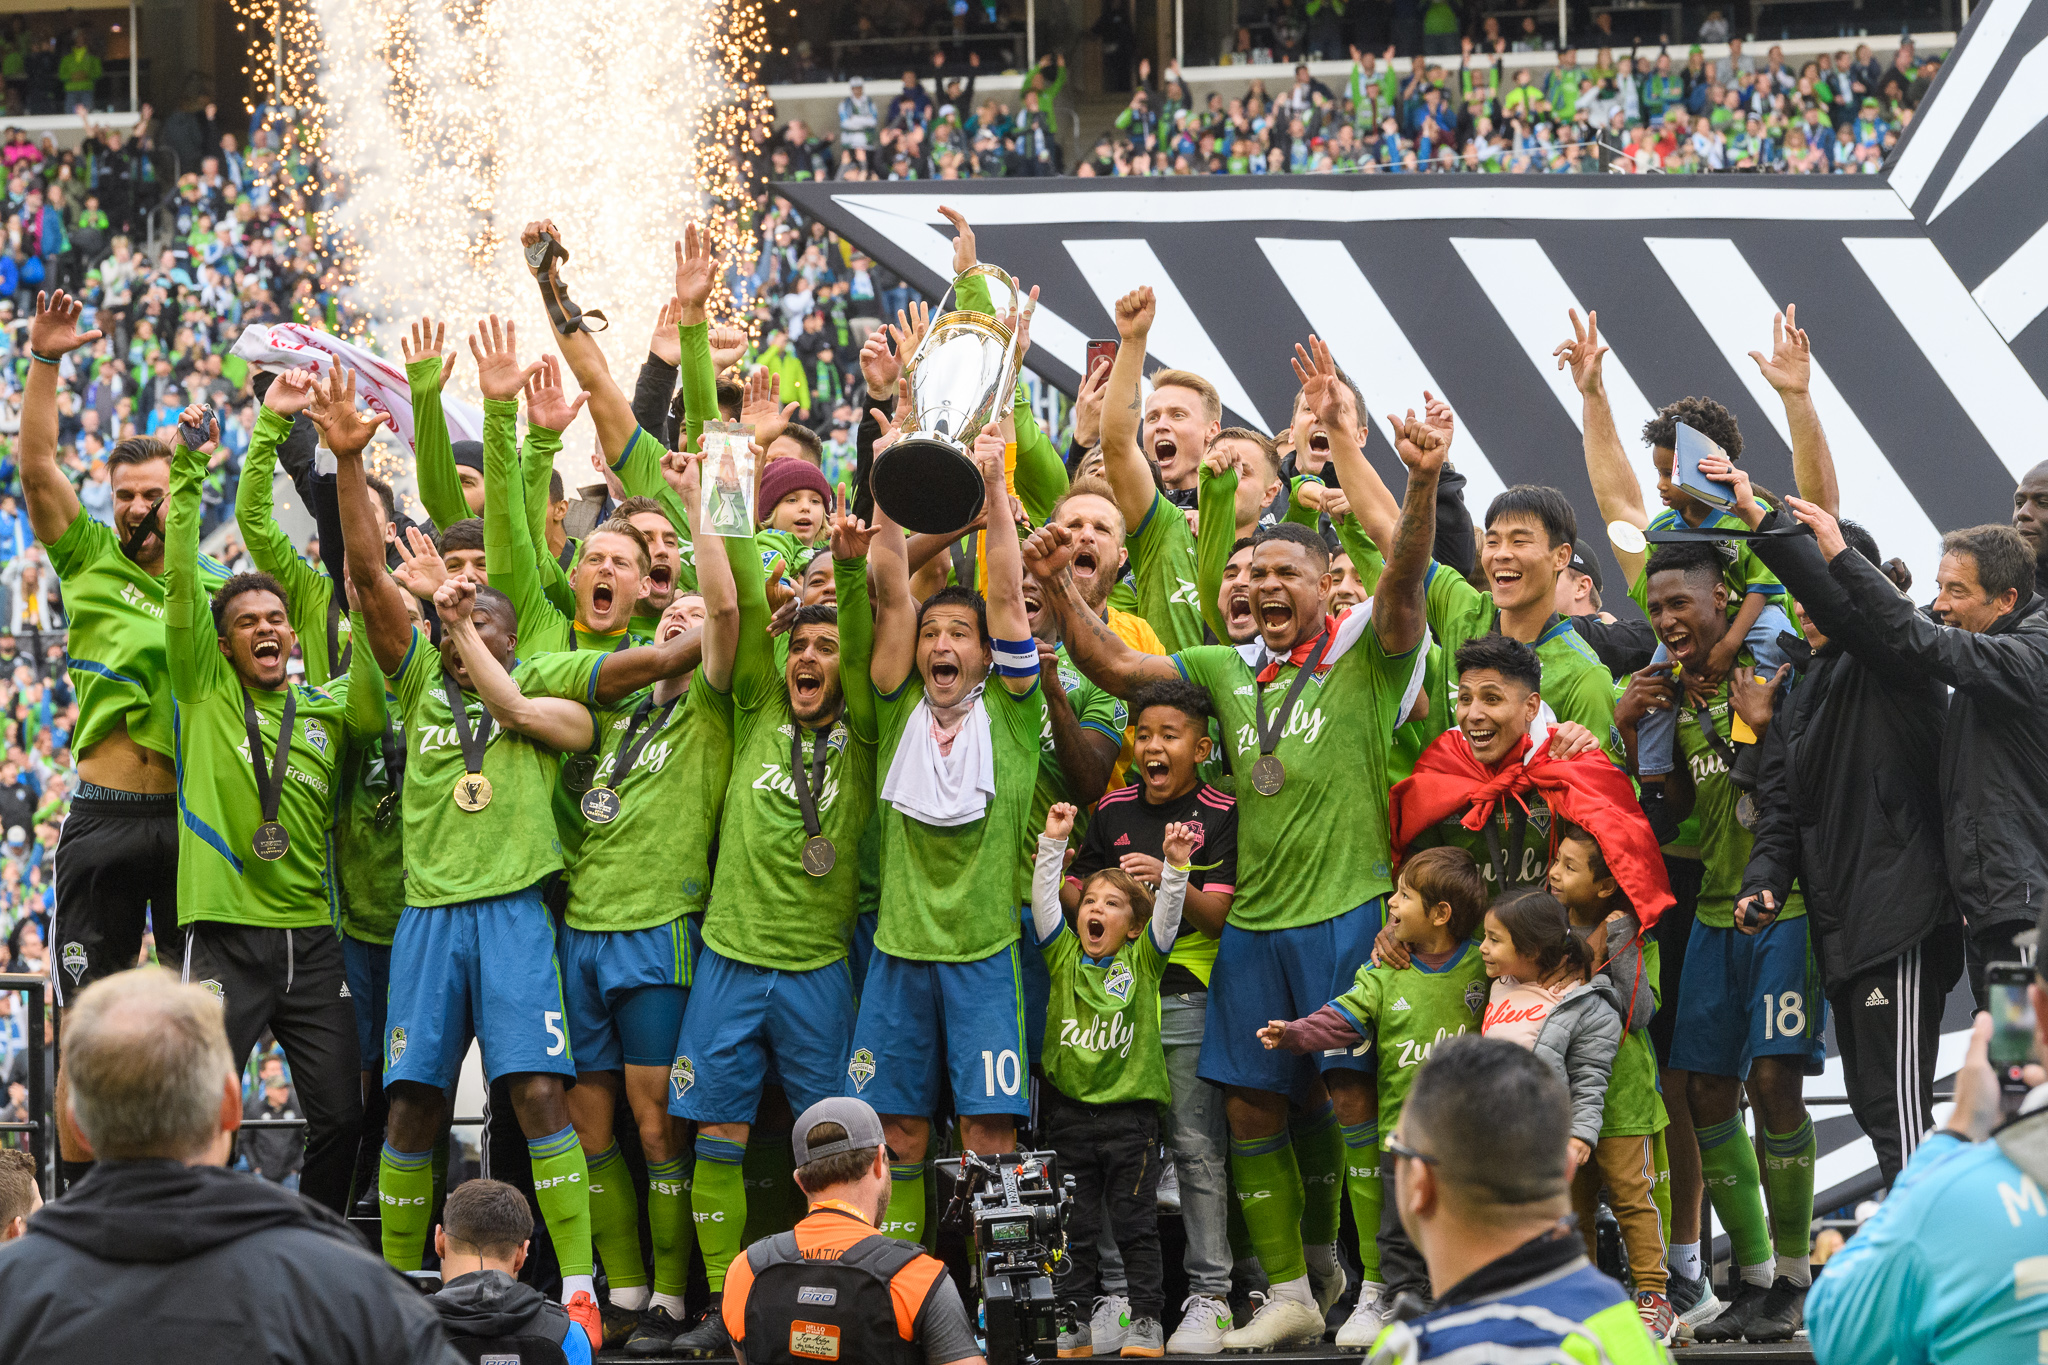 scenes from the epic sounders mls cup win tech execs enjoy championship as new owners geekwire scenes from the epic sounders mls cup win tech execs enjoy championship as new owners geekwire